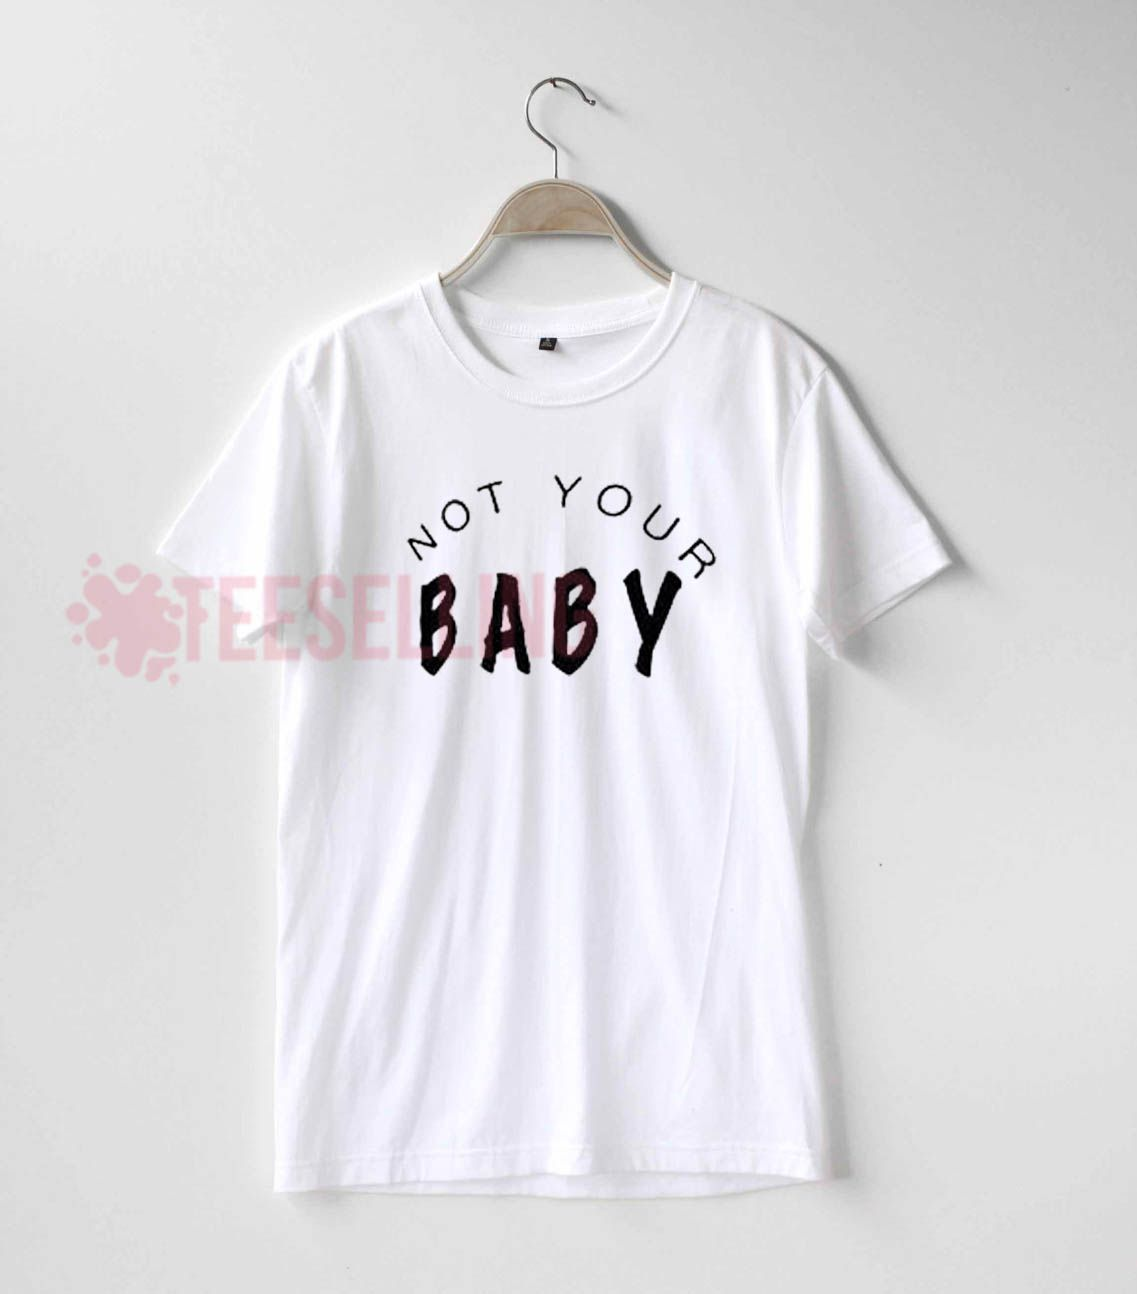 Adult Baby T-Shirts from Spreadshirt Unique designs Easy 30 day return policy Shop Adult Baby T-Shirts now!